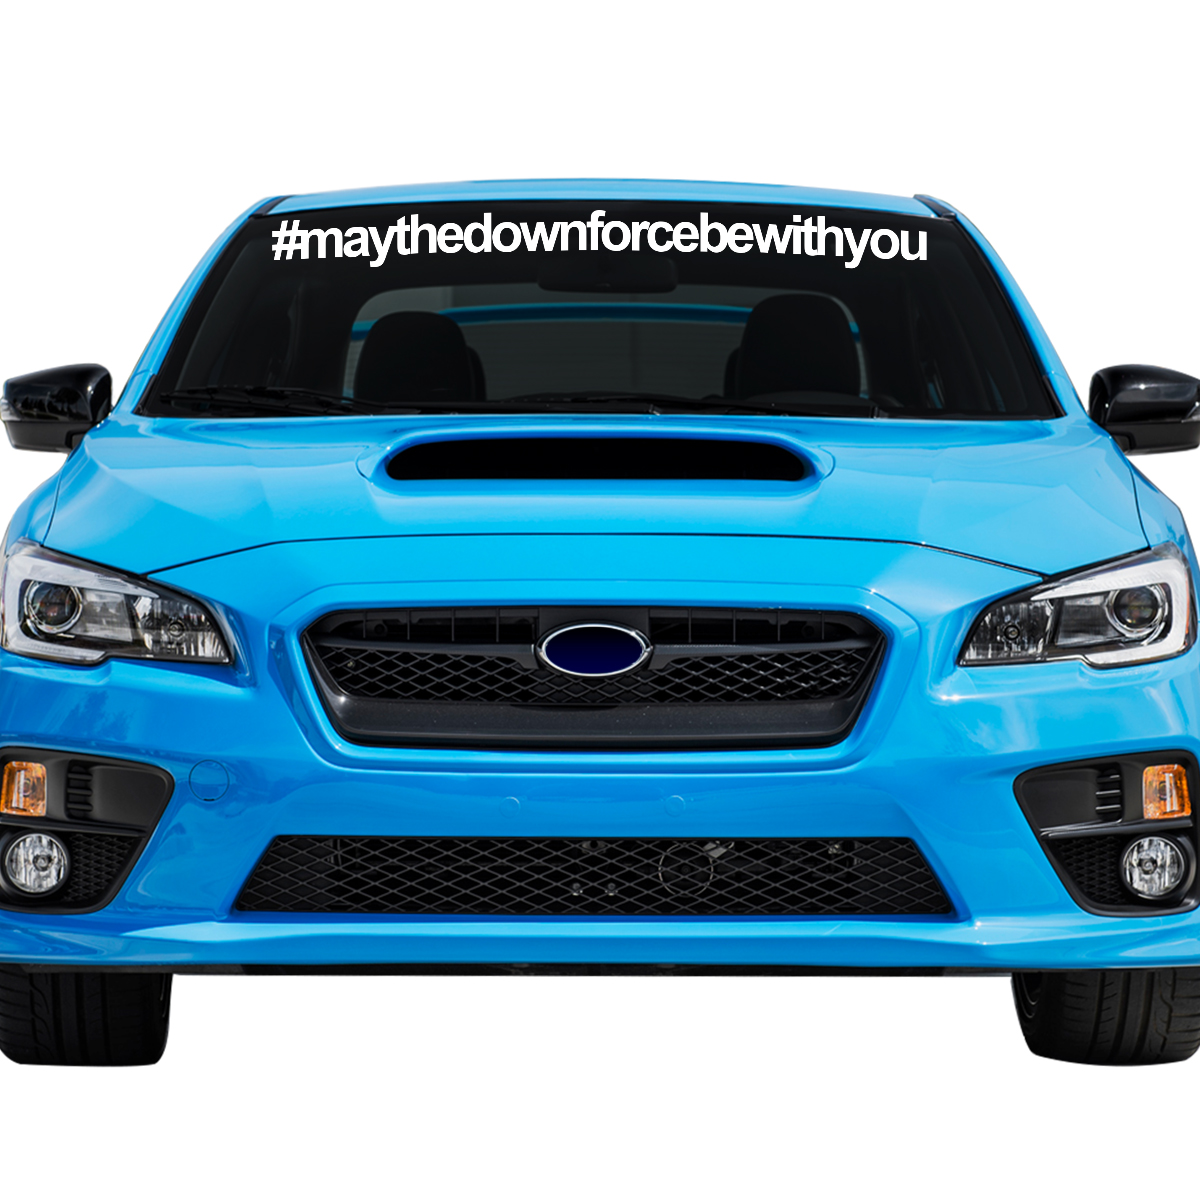 May The Downforce Be With You Car Windshield Banner Decal Sticker - Car windshield decals